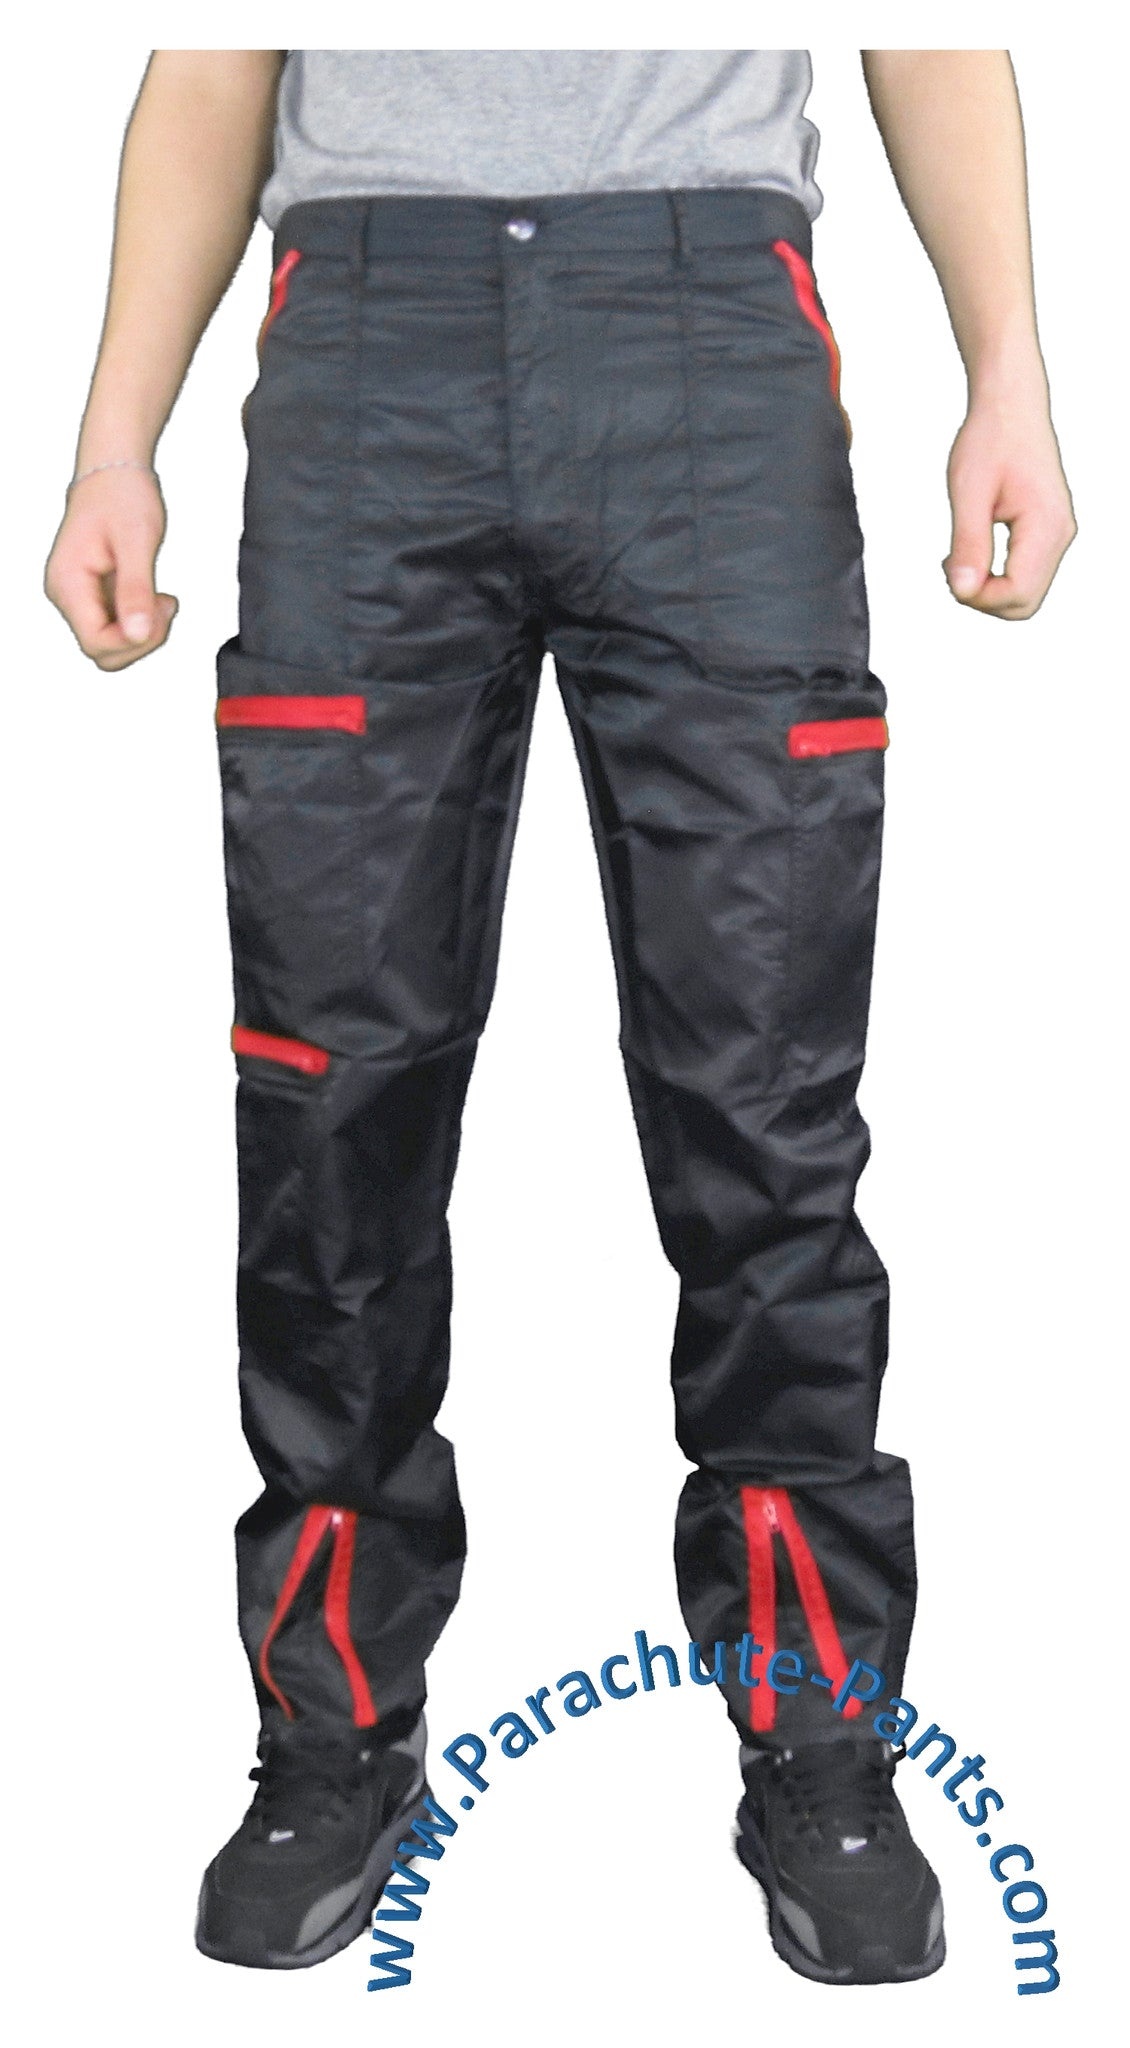 These PVC Countdown Parachute Pants will bring you back to the 80s in no time. The PVC stretches to fit tightly, or worn looser for a relaxed fit.